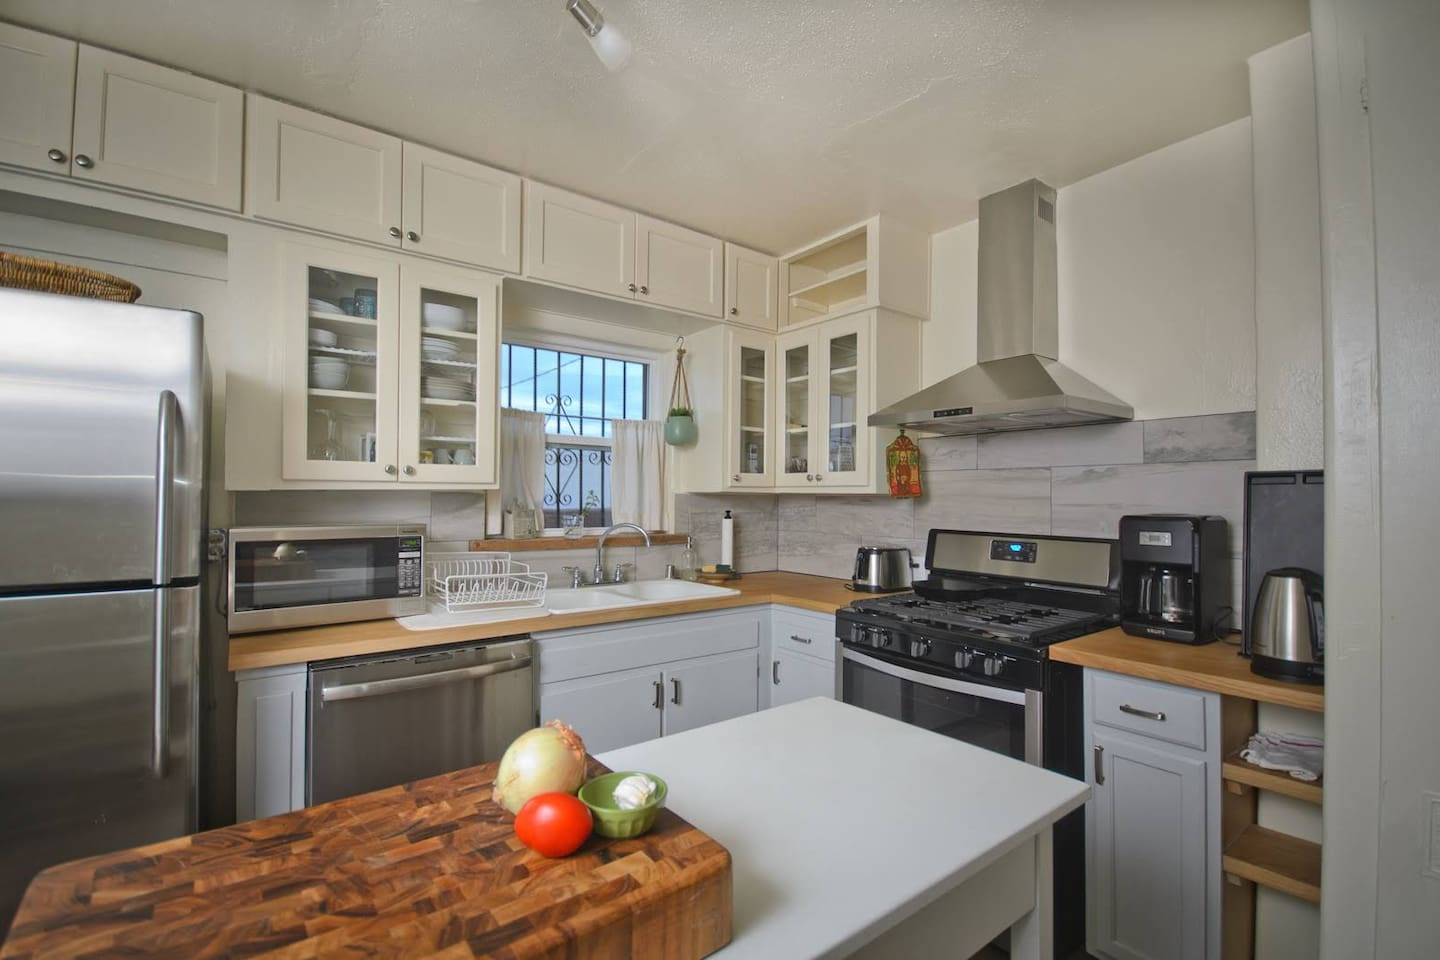 Kitchen with large and small appliances.